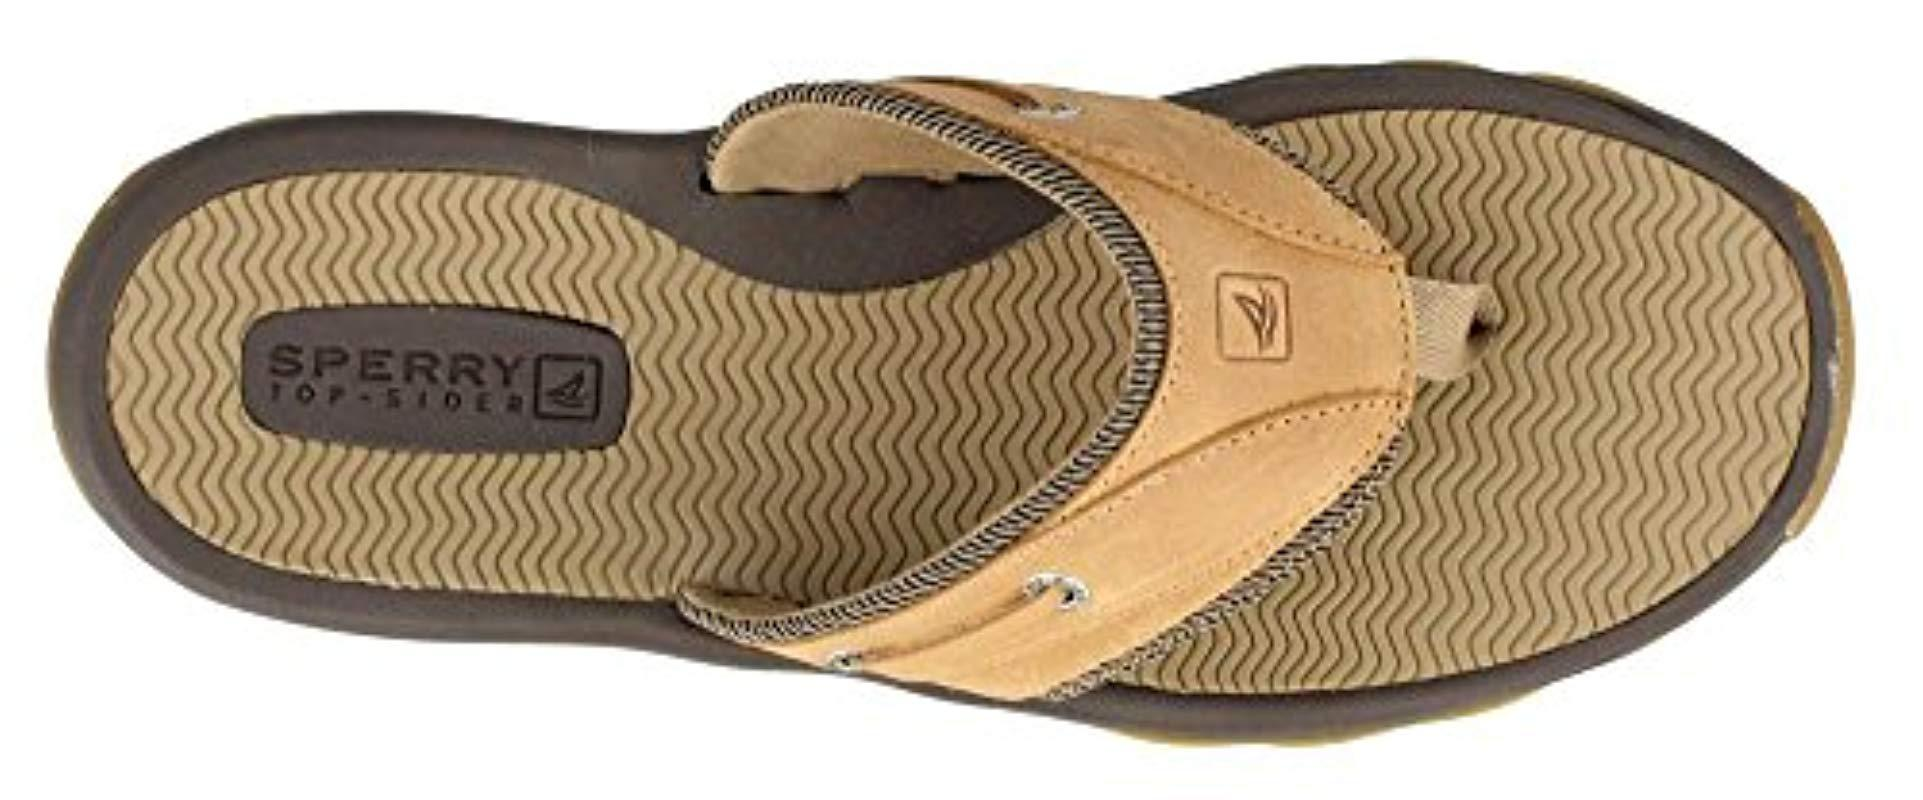 769687ccb6a6b Lyst - Sperry Top-Sider Top-sider Outer Banks Thong Sandal for Men